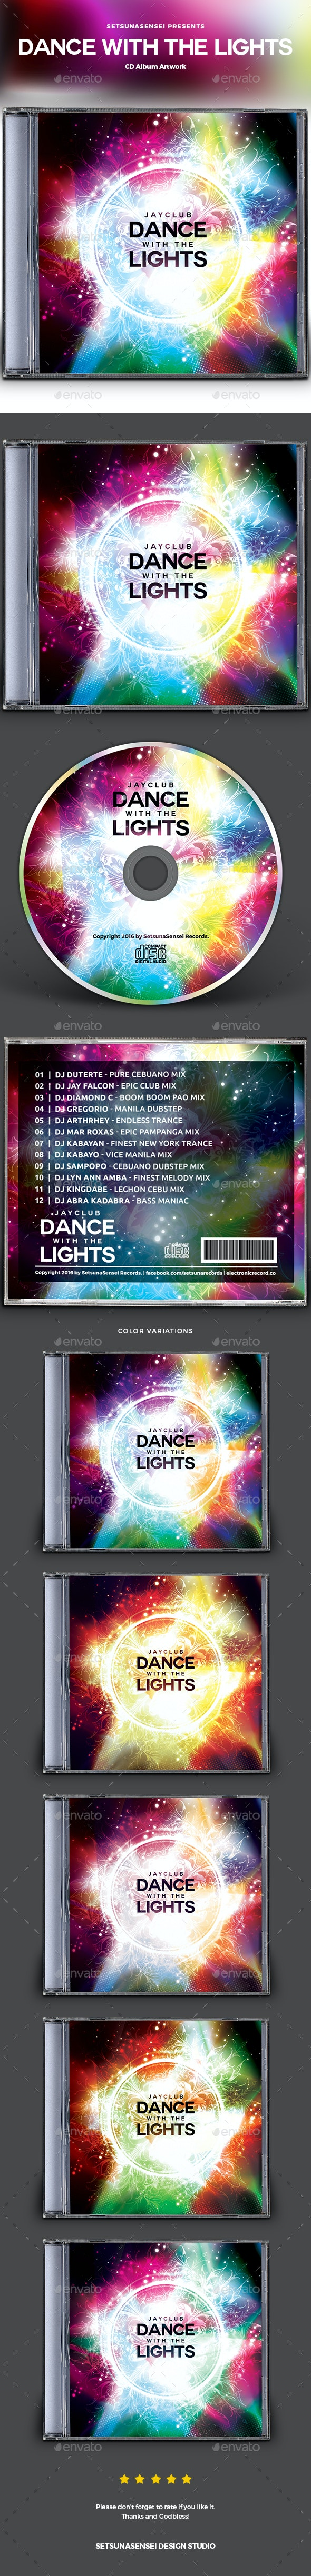 Dance with the Lights CD Album Artwork - CD & DVD Artwork Print Templates